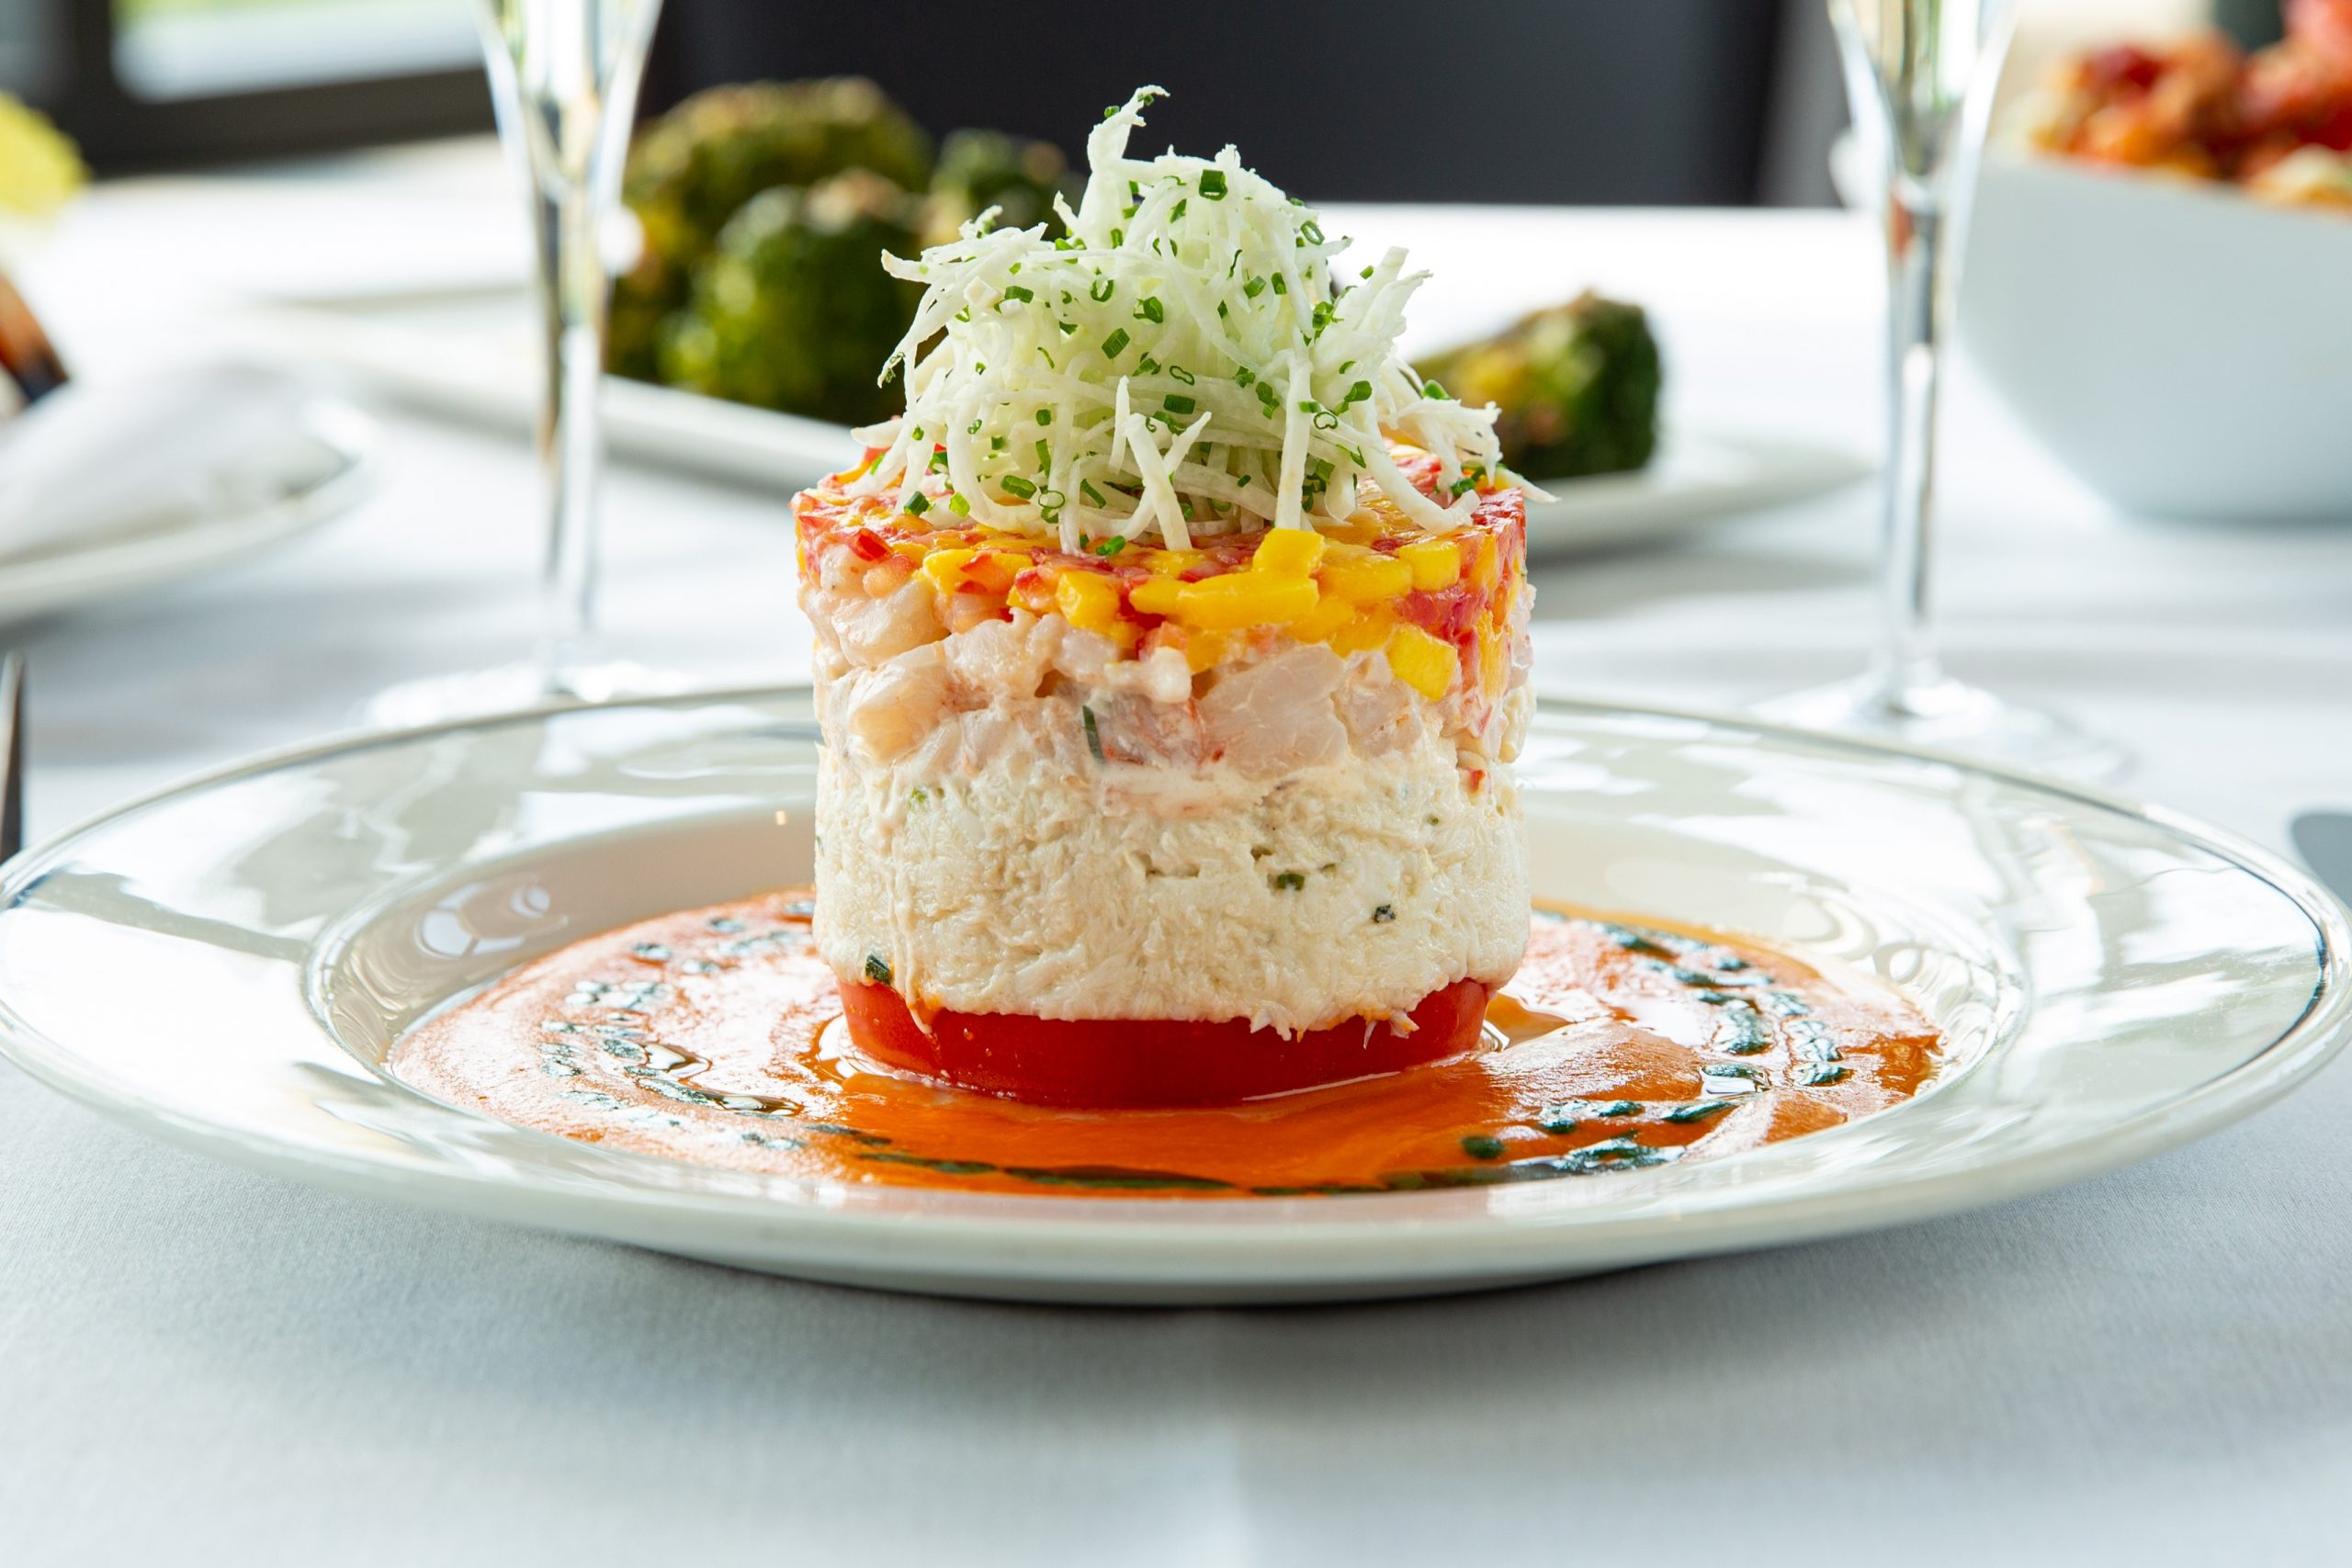 picture of the crab and shrimp Napoleon on a plate on a dining table